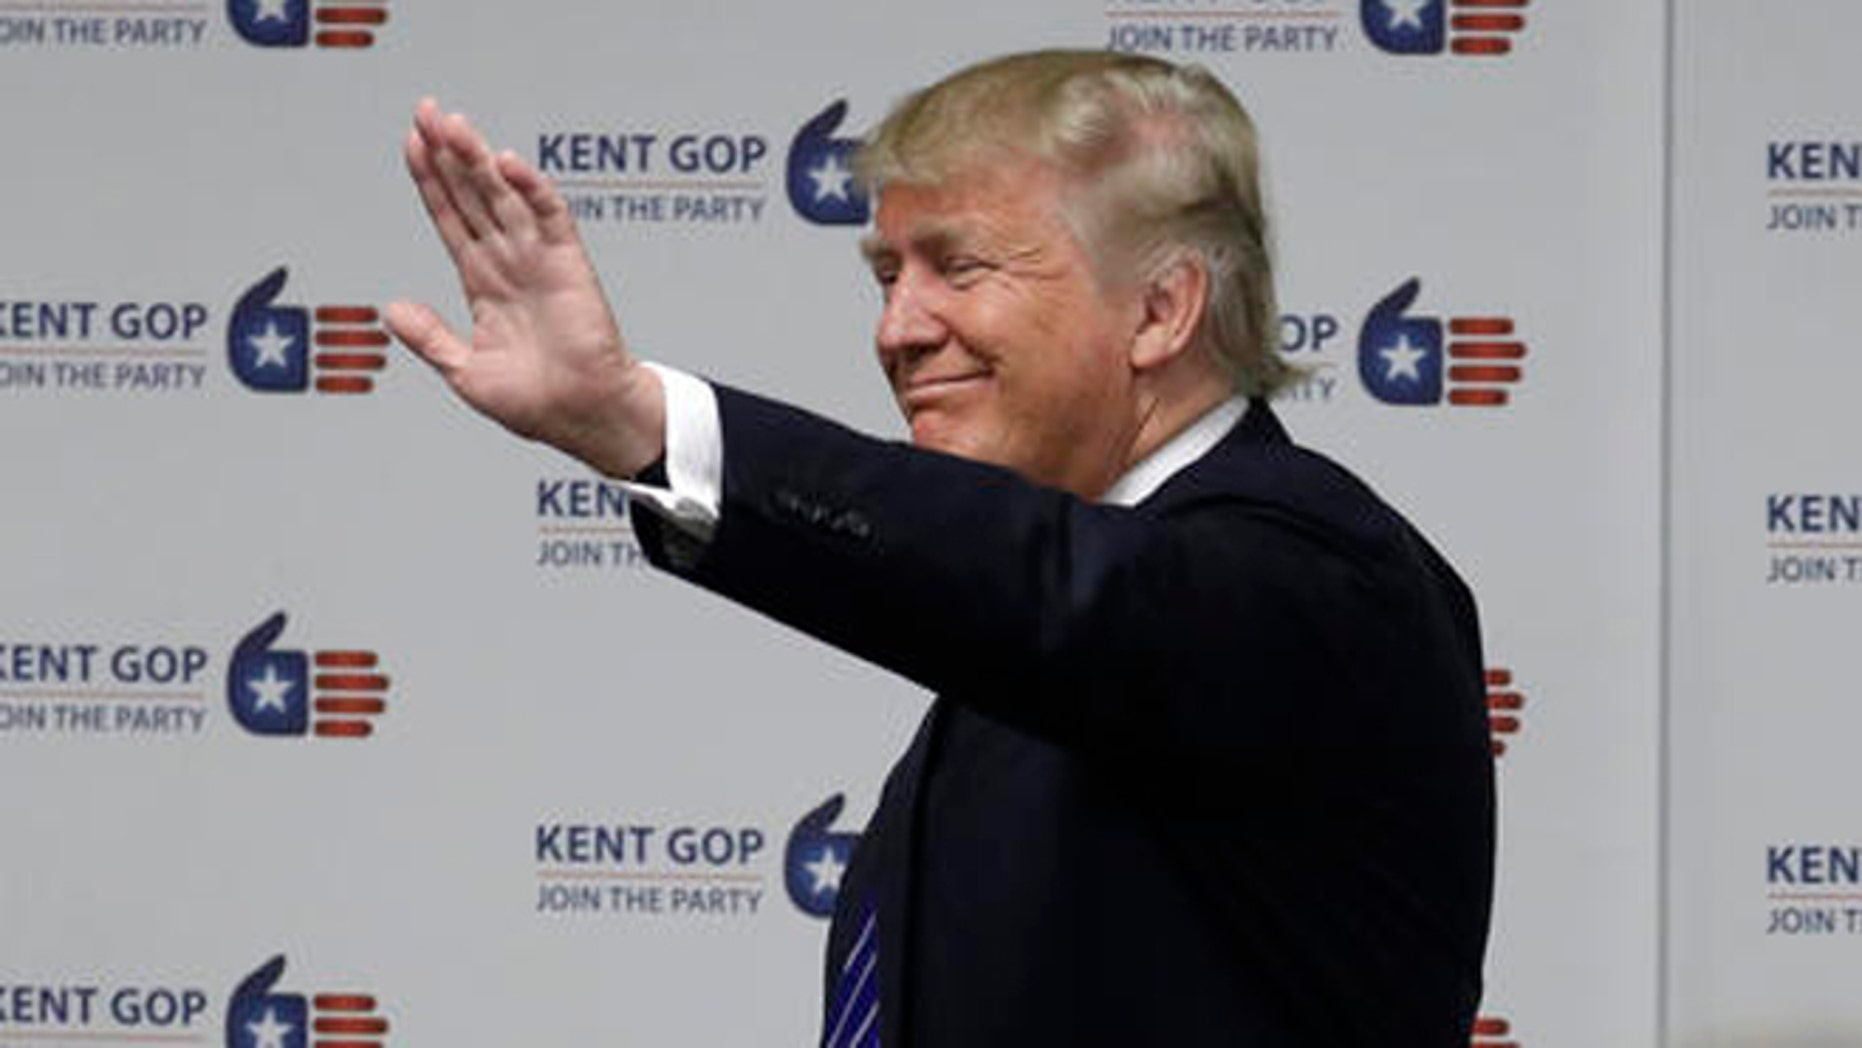 Republican presidential candidate Donald Trump visits the Kent County Republican Headquarters, Friday, Sept. 30, 2016, in Grand Rapids, Mich. (AP Photo/John Locher)